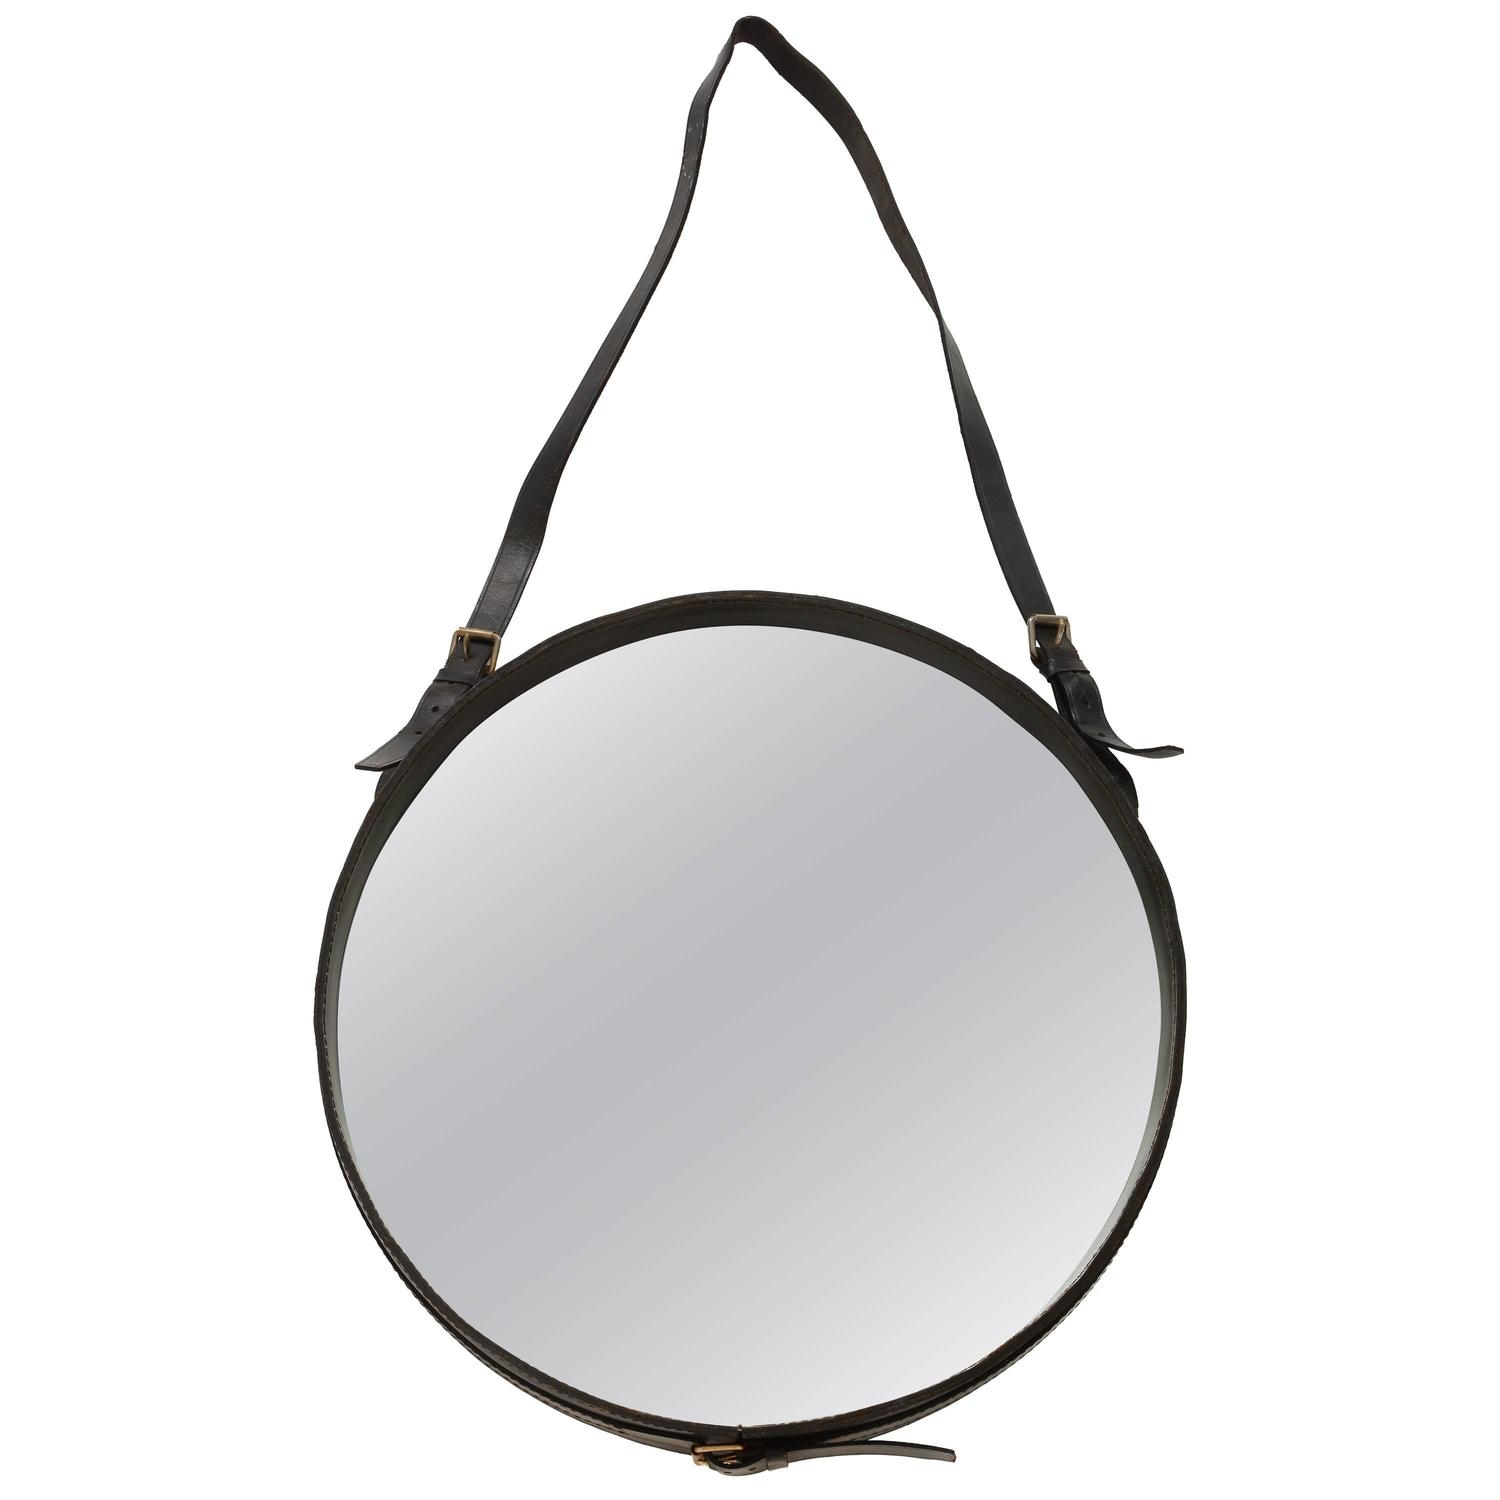 Jacques Adnet Mirrors 9 For Sale At 1stdibs With Regard To Round Leather Mirror (Photo 14 of 15)